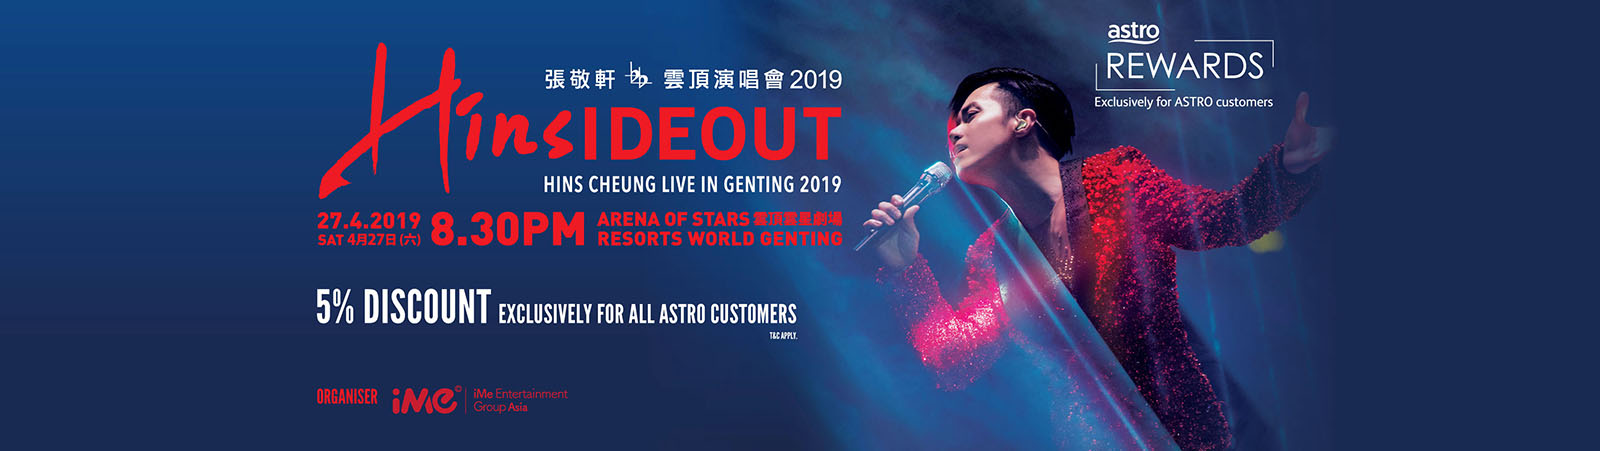 HINSIDEOUT: Hins Cheung LIVE in Genting 2019